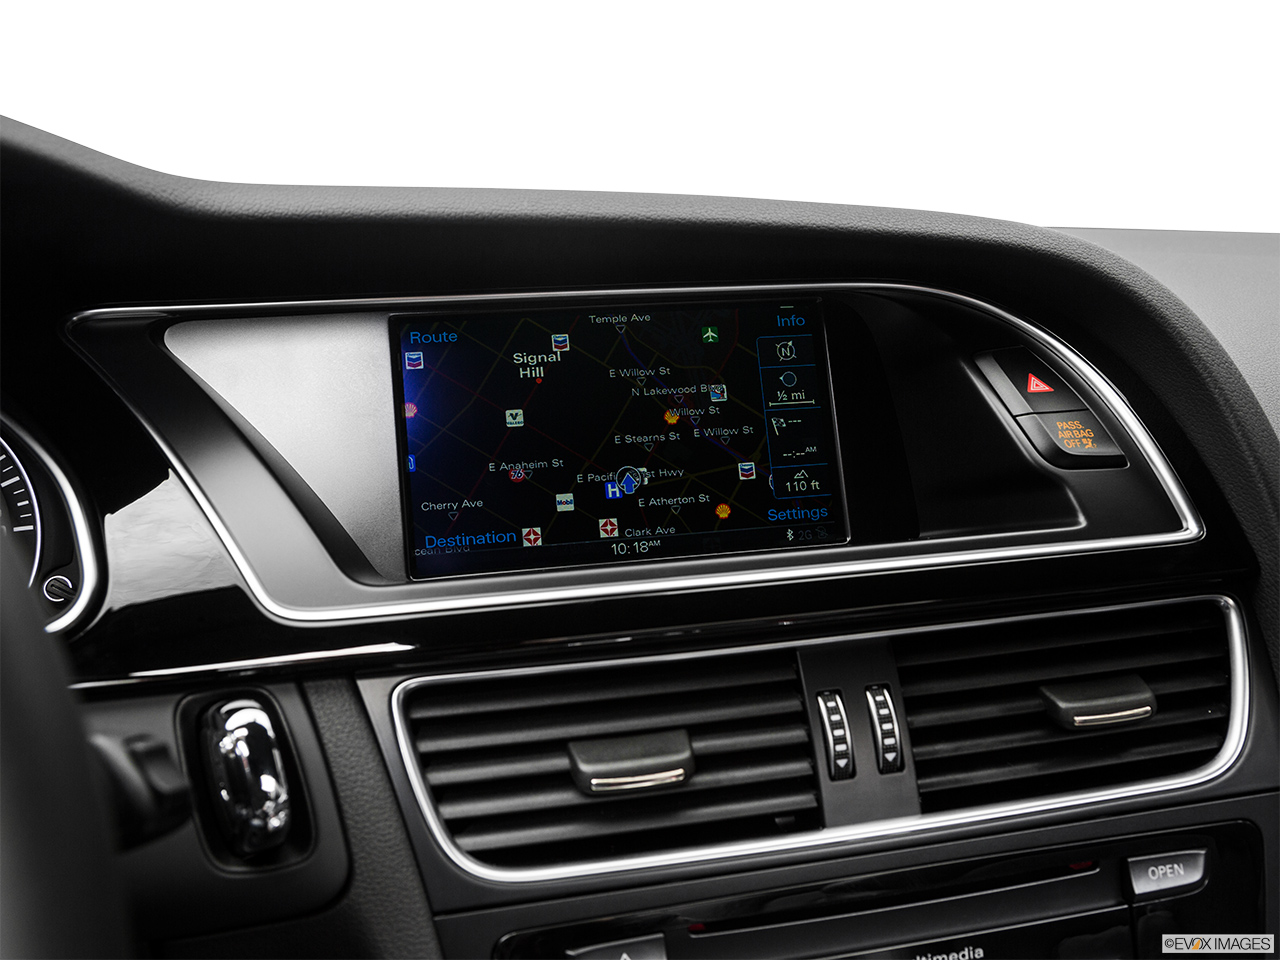 2017 Audi A5 Sport Cabriolet 2.0 TFSI Driver position view of navigation system.